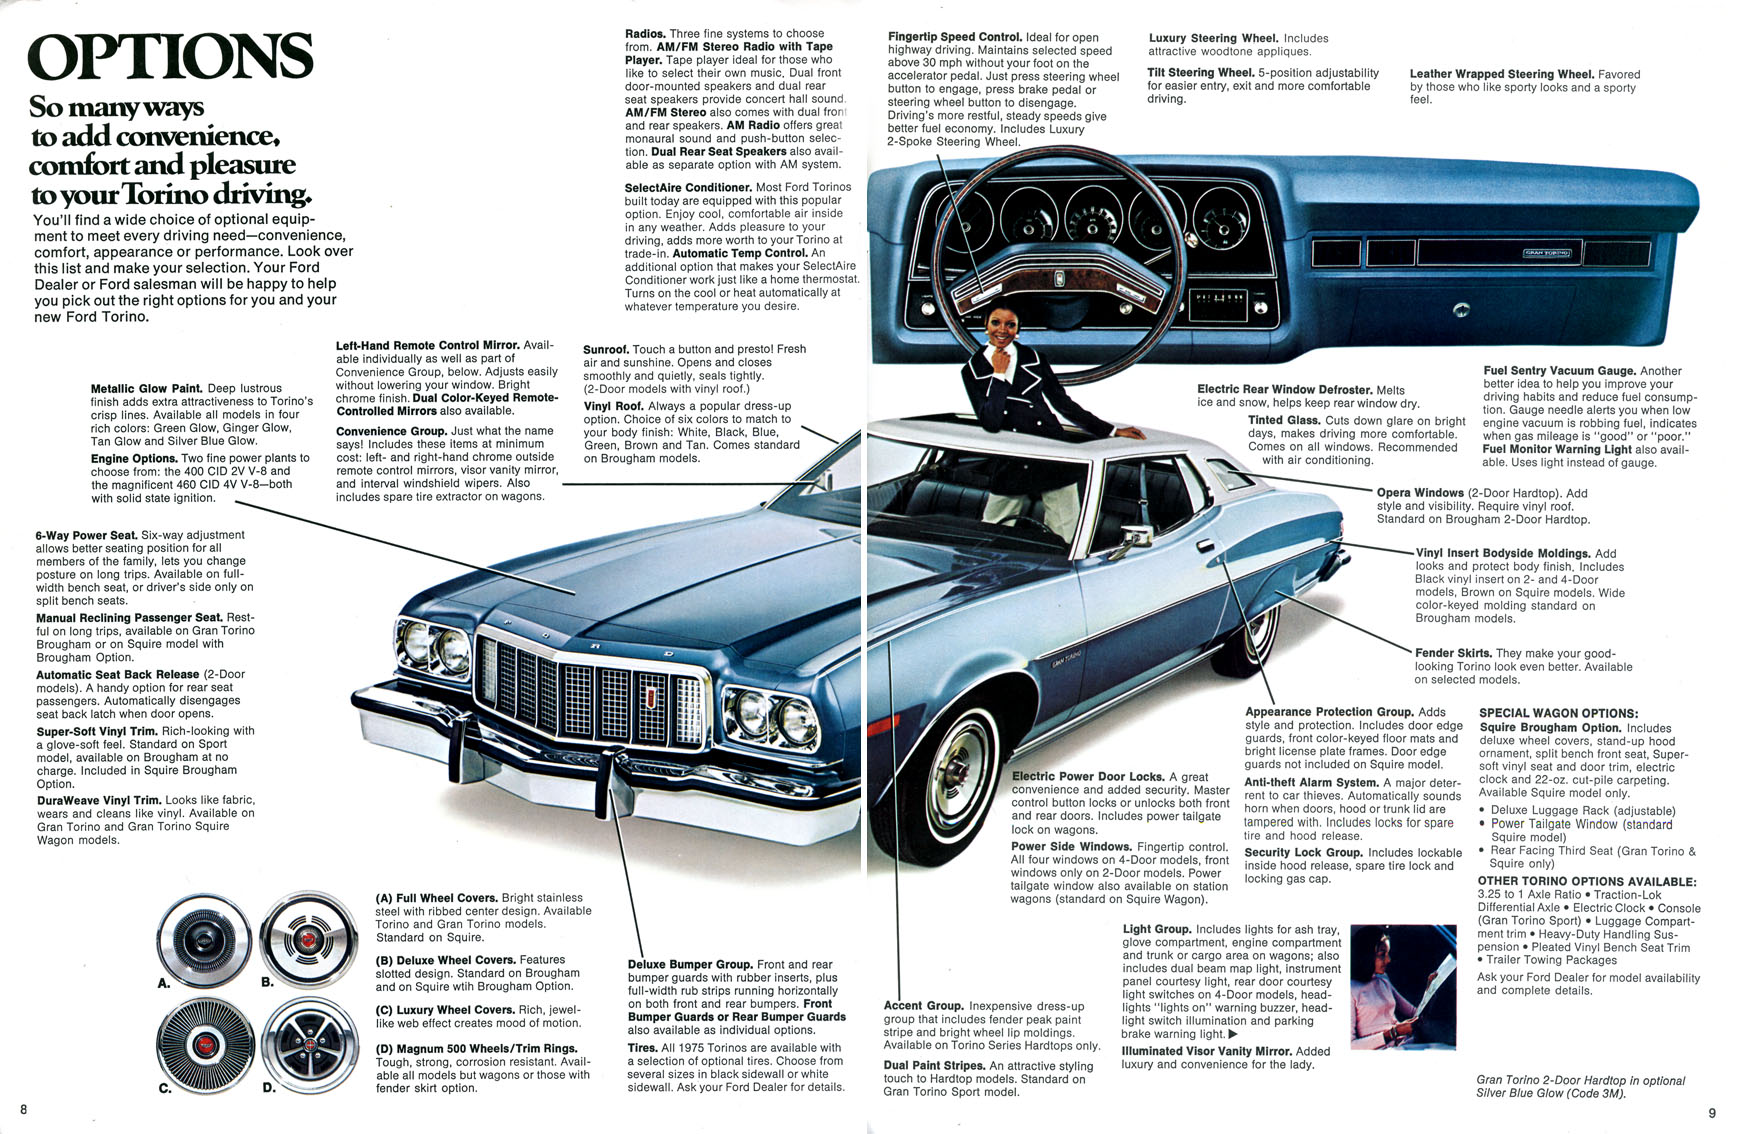 1973 Ford Gran Torino Brougham Information And Photos Momentcar 1970 Specs 12